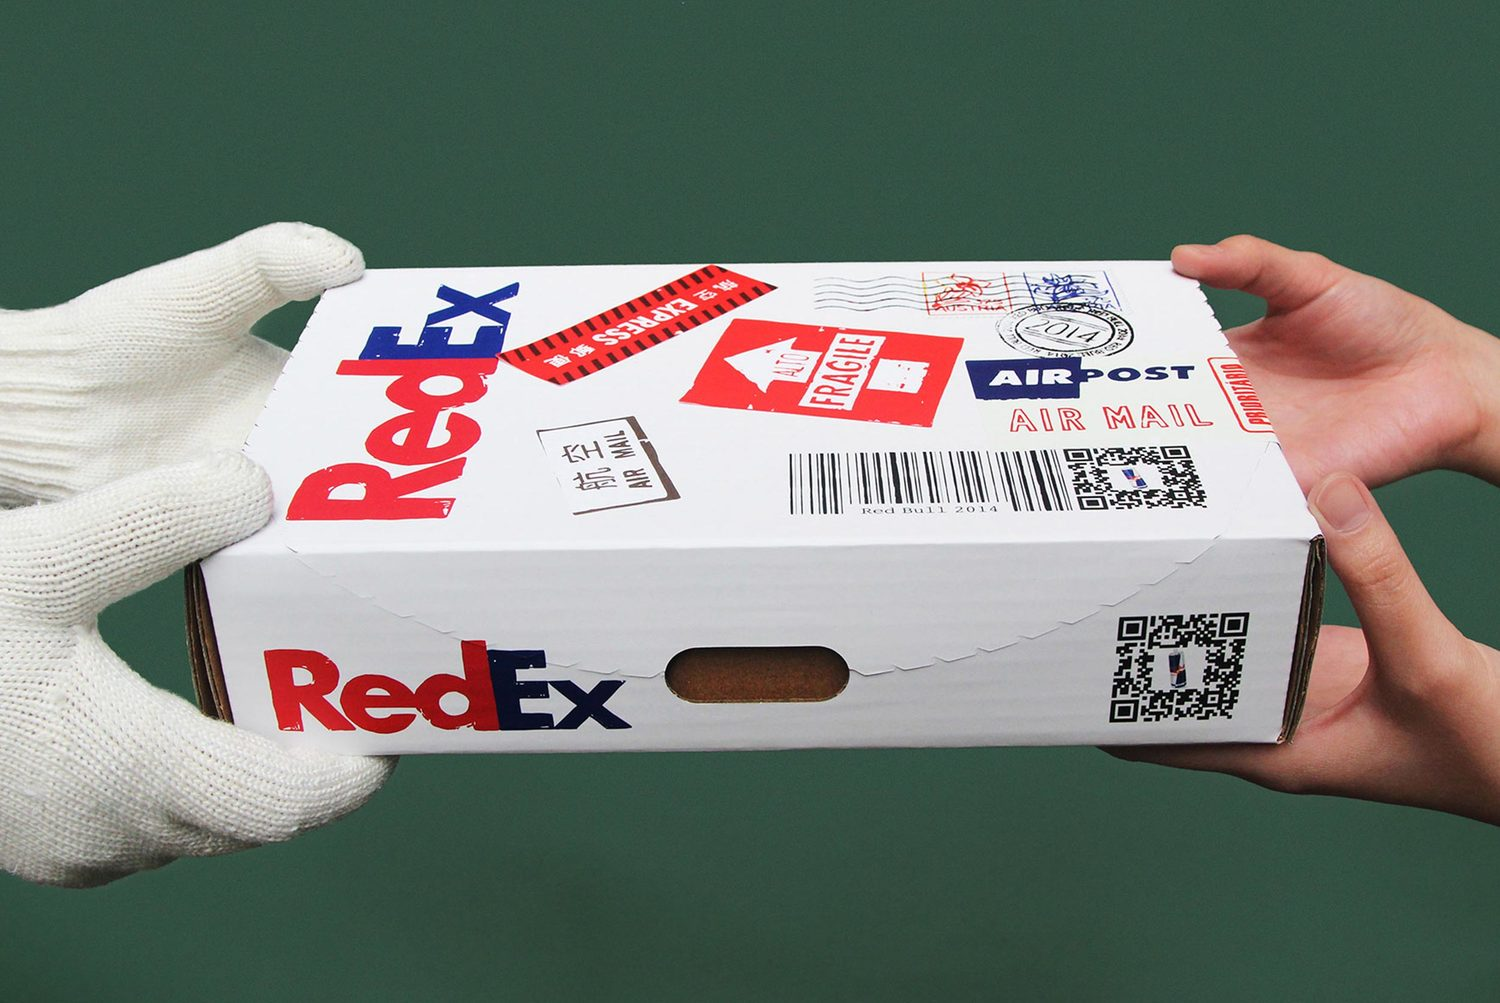 For our launch pack, we used the insight that a FedEx package meant high valued goods sent from abroad.